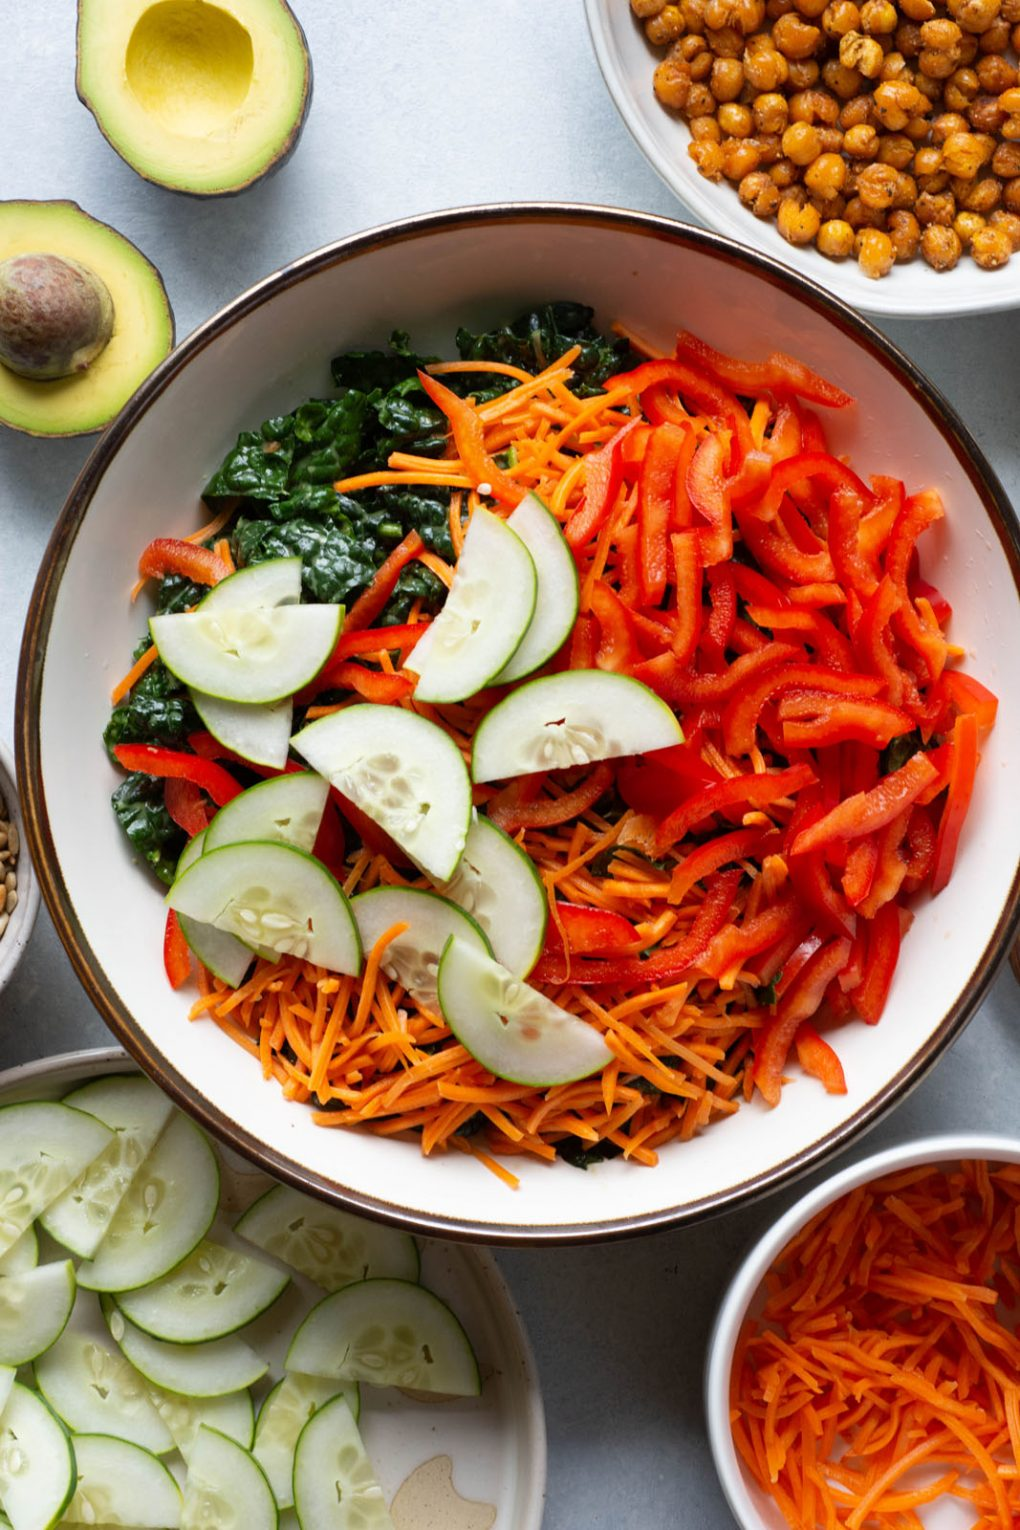 Overhead shot of a large white bowl filled with kale, shredded carrots, thinly sliced red pepper, and thinly sliced cucumber, on a light background